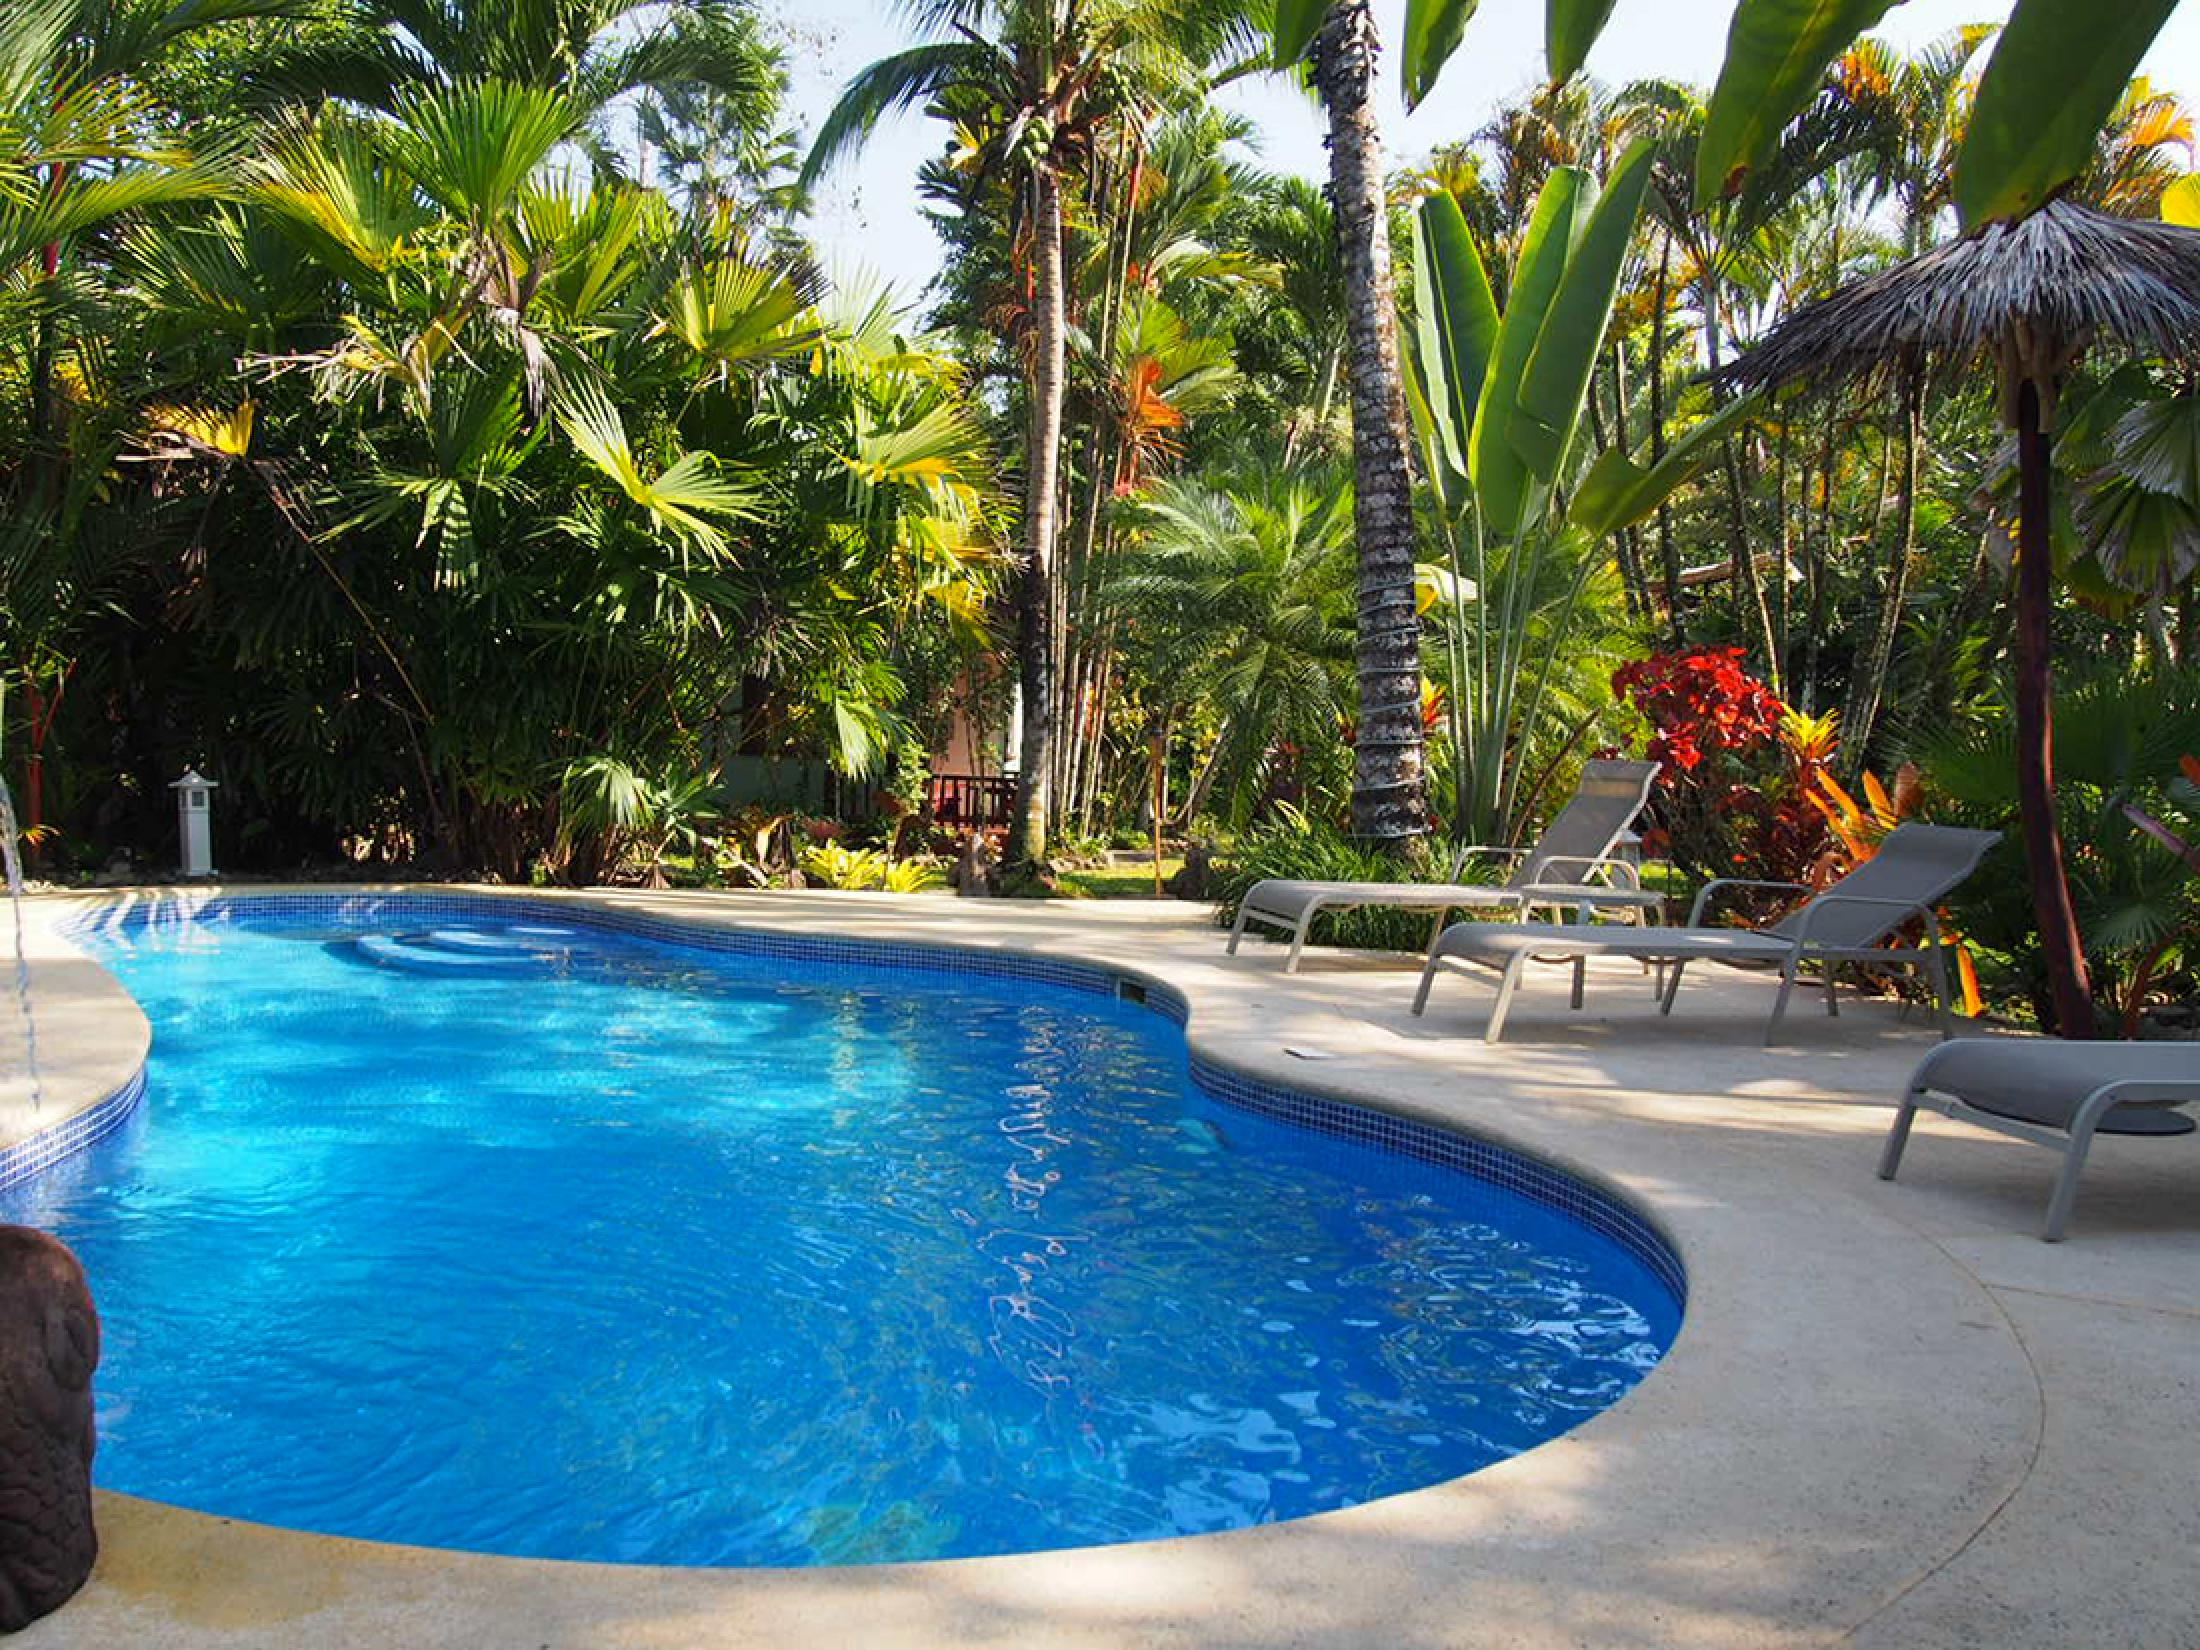 El Encanto Bed & Breakfast